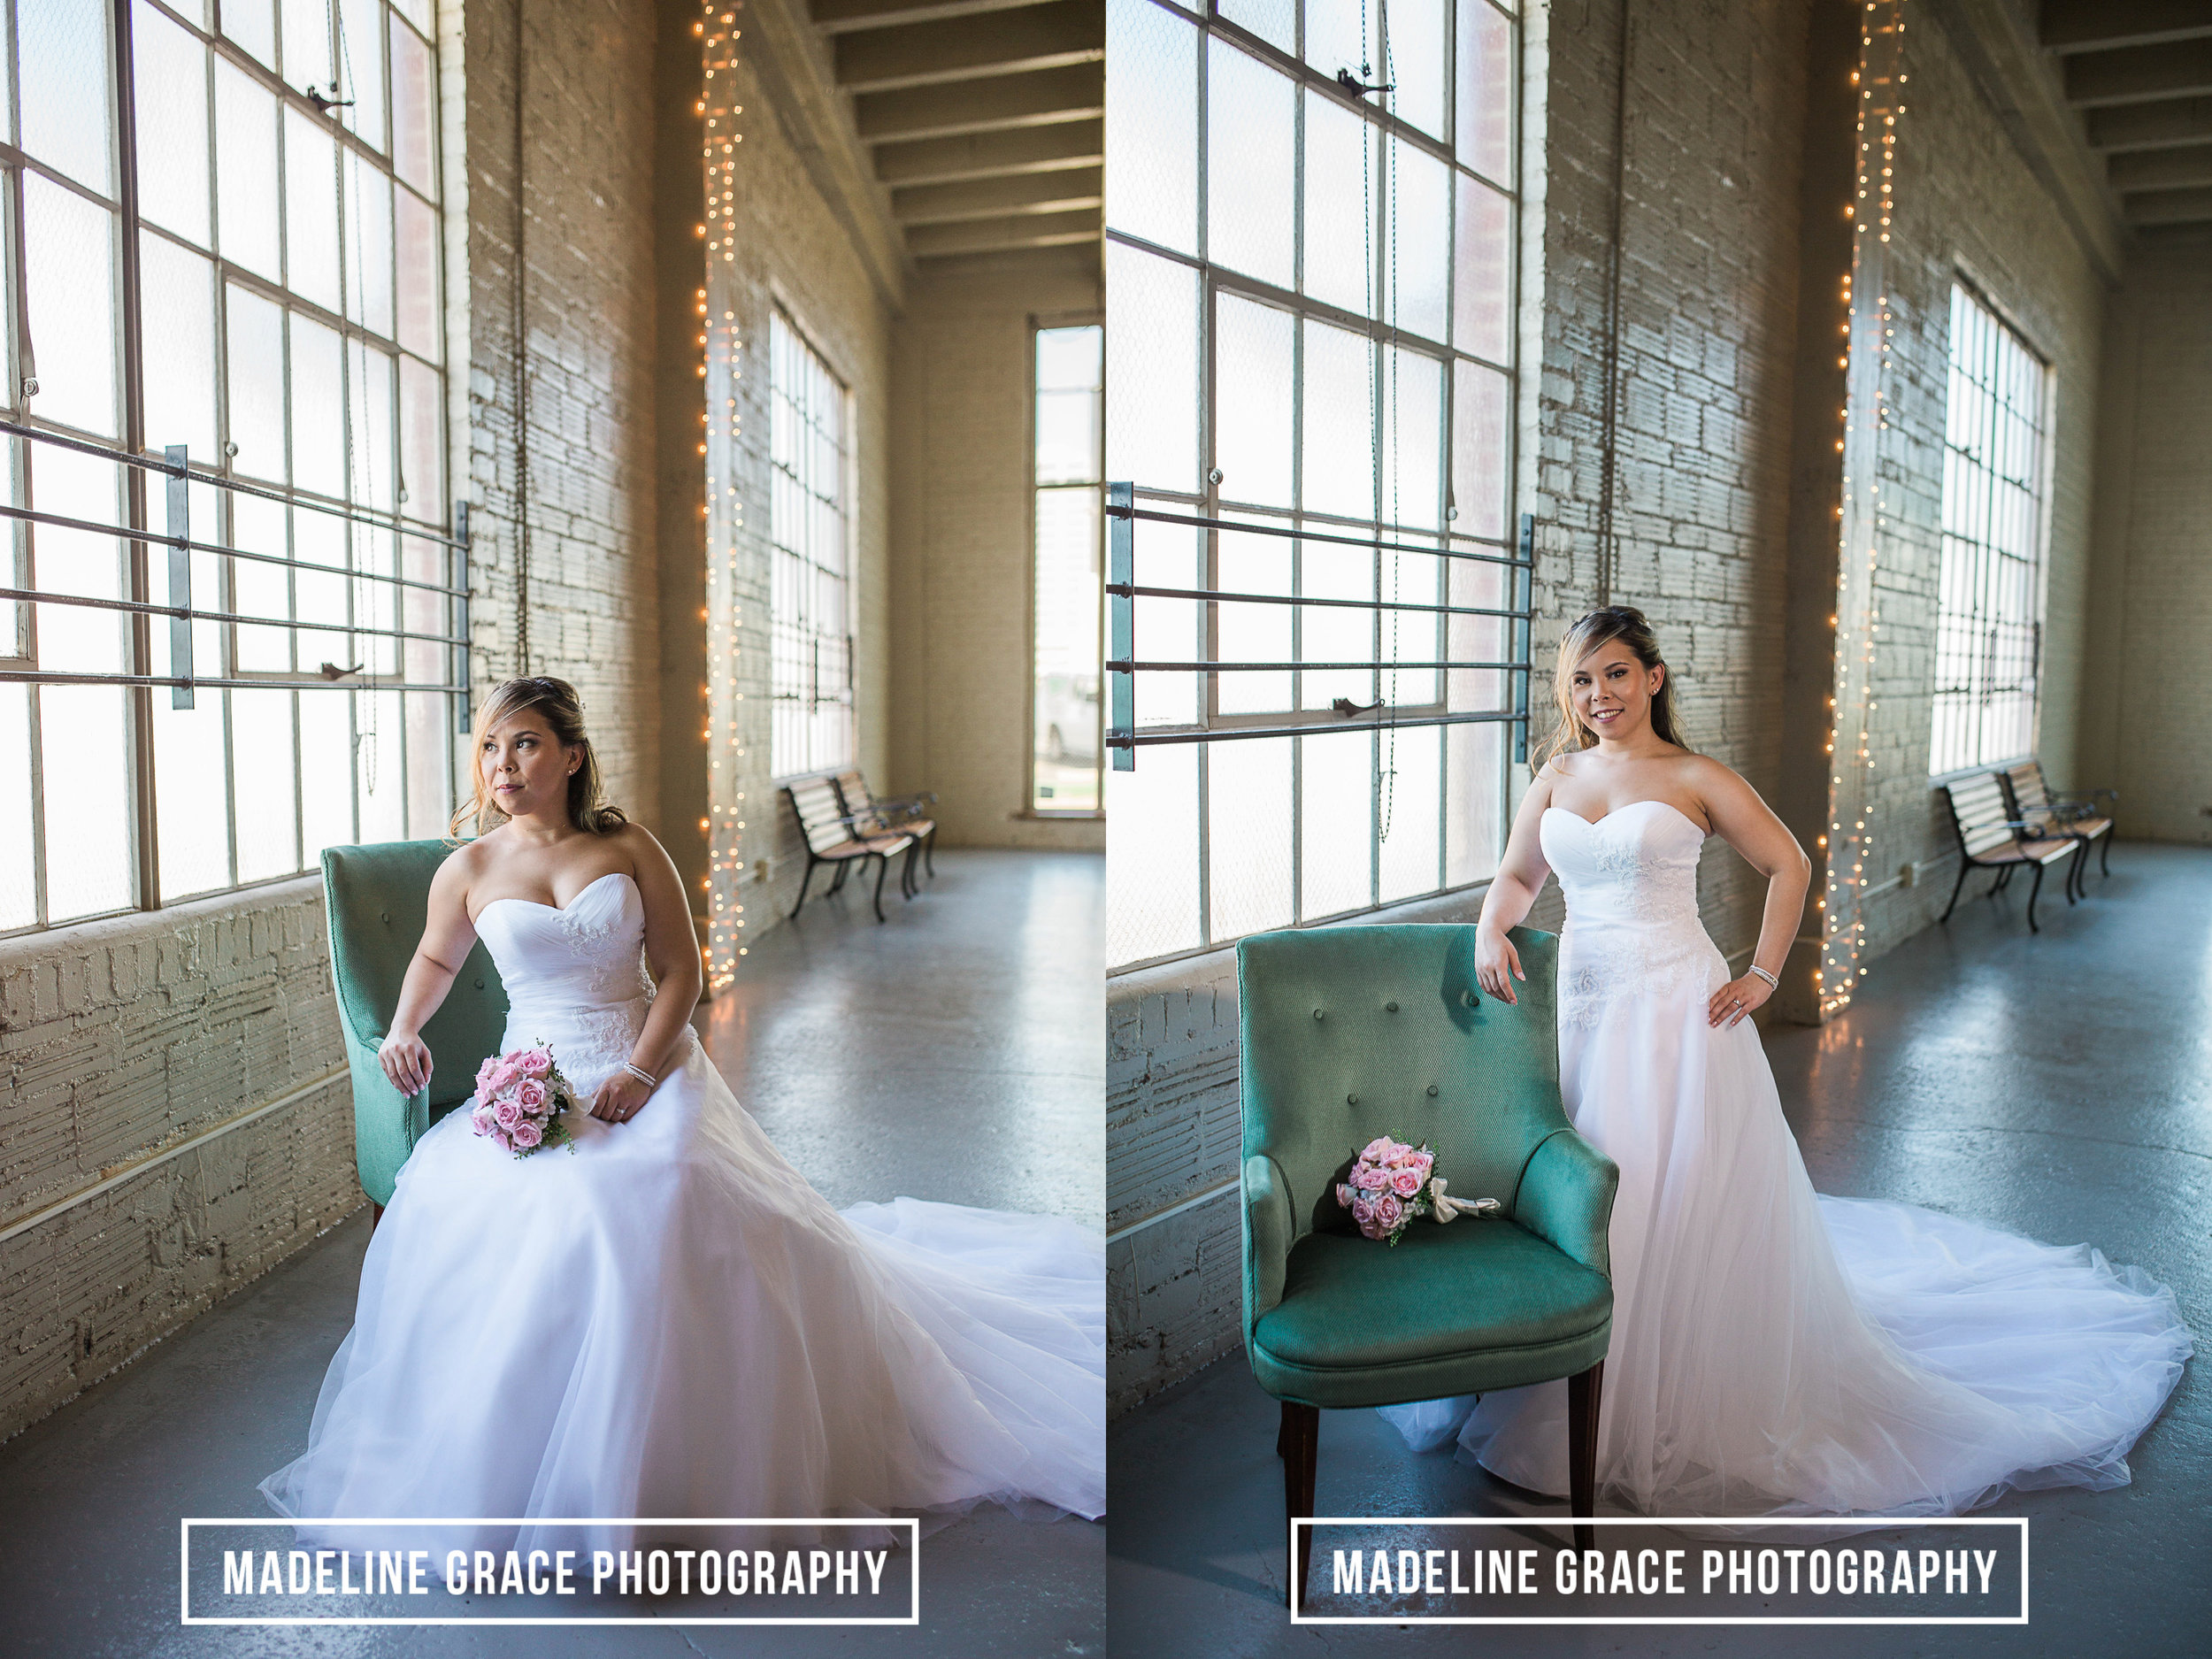 MGP-Sarah-Bridals-Blog-7 copy.jpg